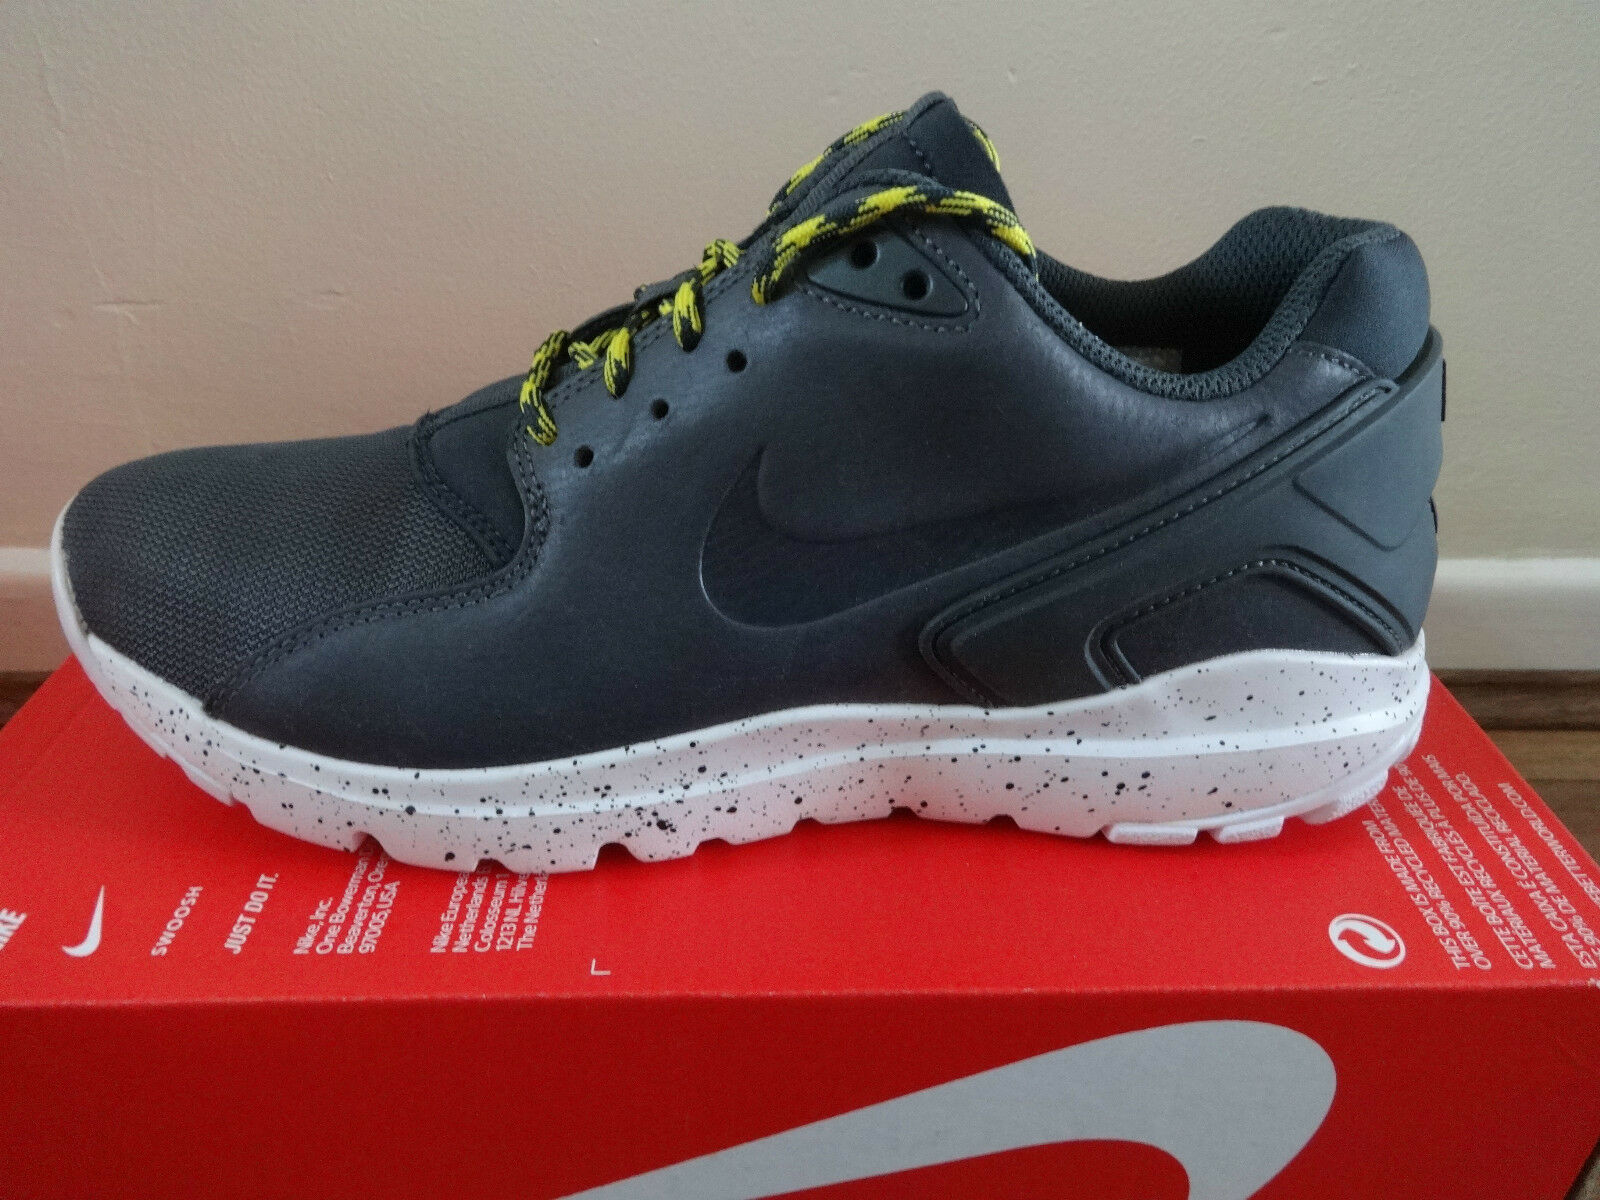 Nike Koth Ultra Low mens trainers casual schuhe Turnschuhe 749486 002 NEW WITH BOX